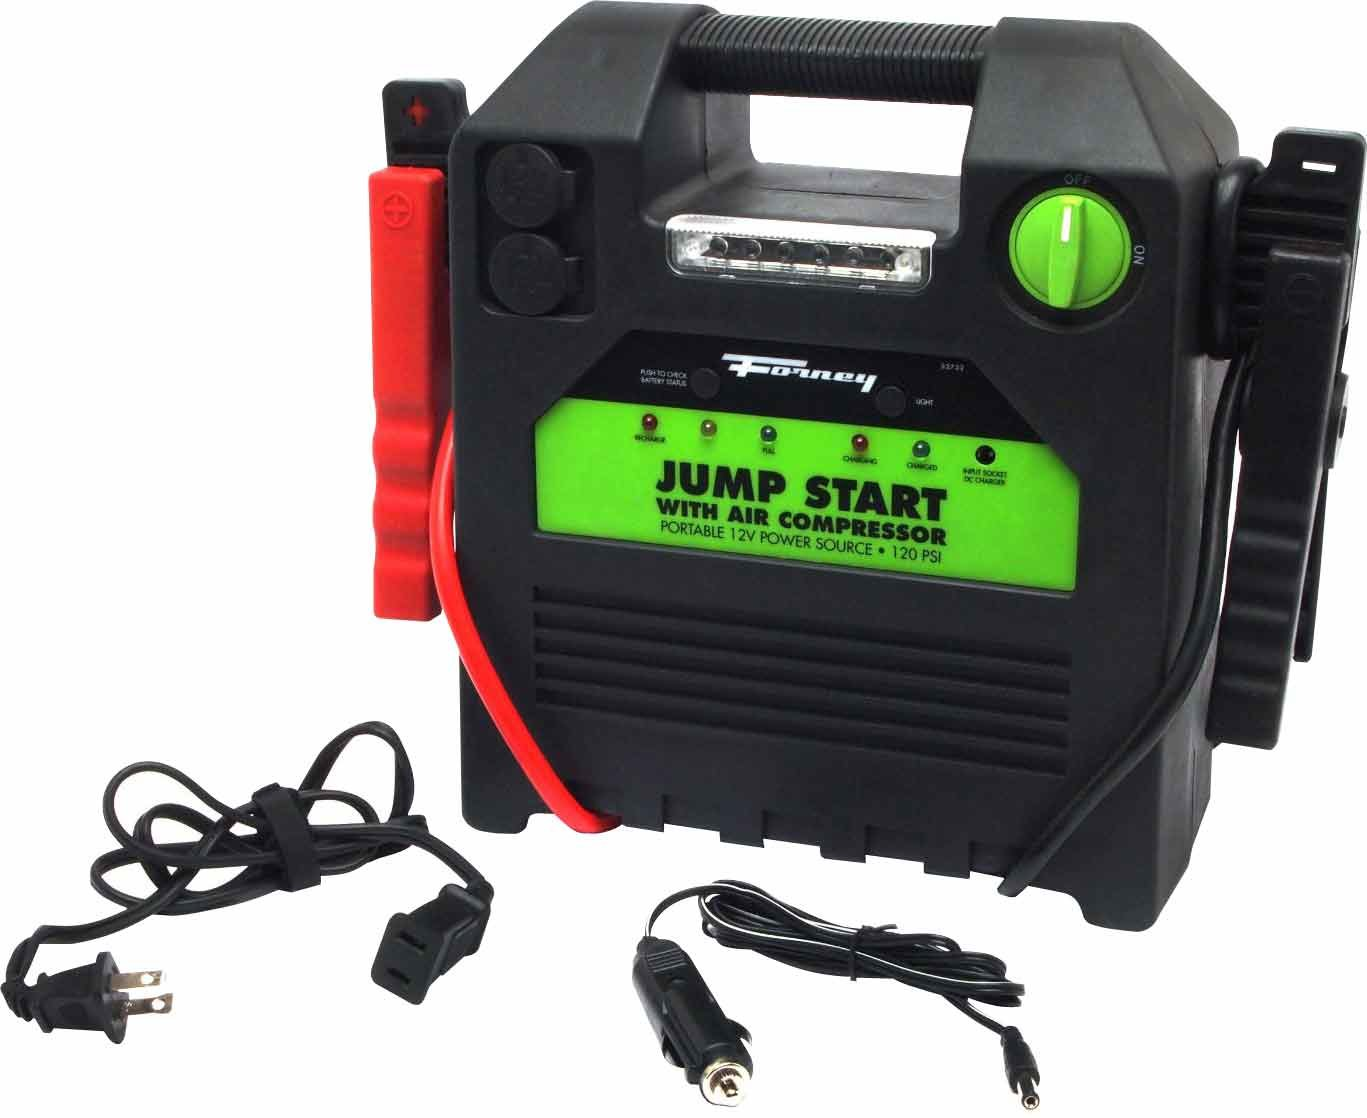 Forney 52732 Battery Booster Pack with 120 PSI Air Compressor, 18-Amp Hour, 12-Volt Jump Start